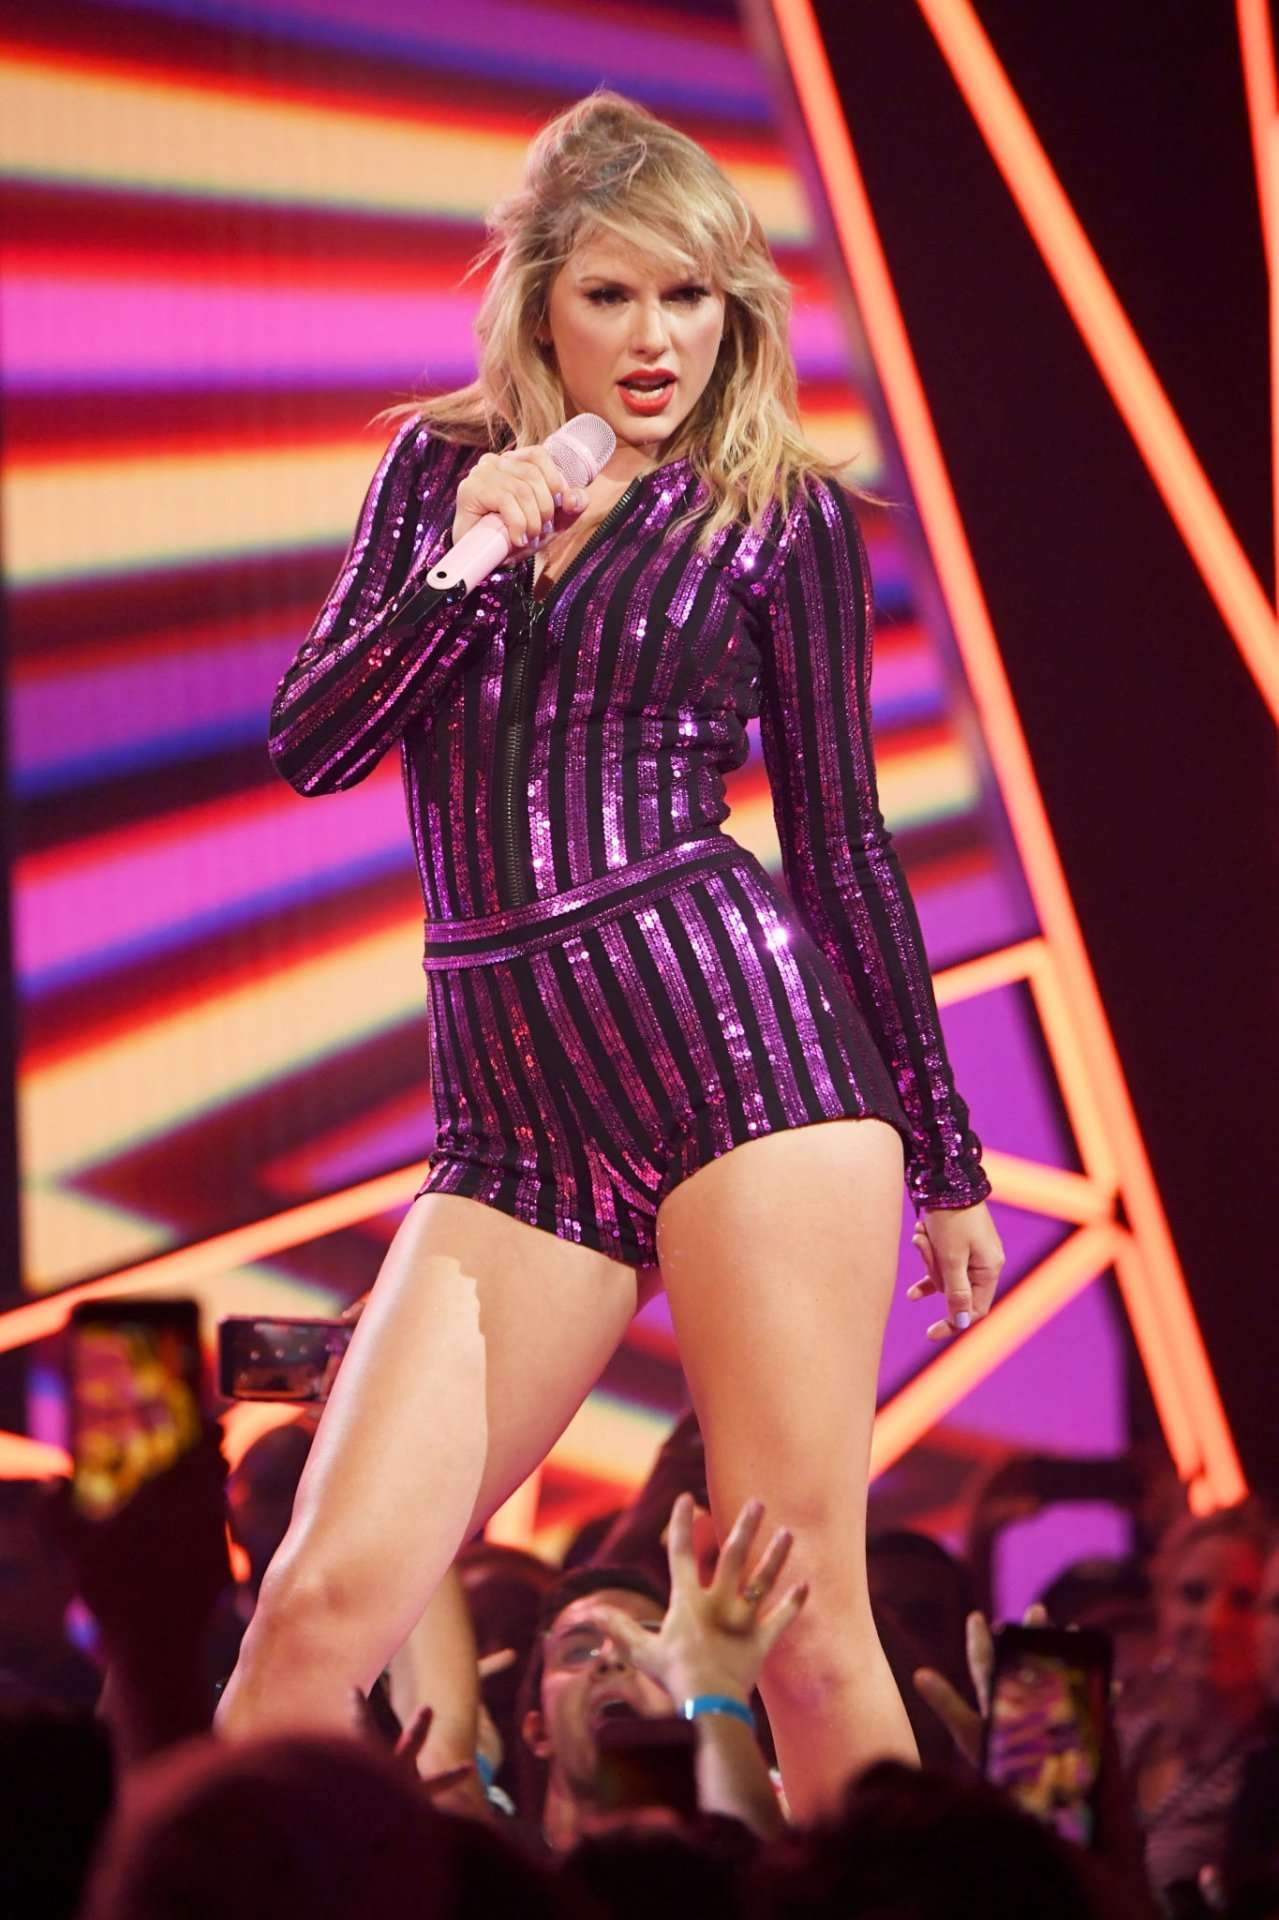 Taylor Swift Leggy, Performing Live at 2019 Amazon Prime Day Concert in New York